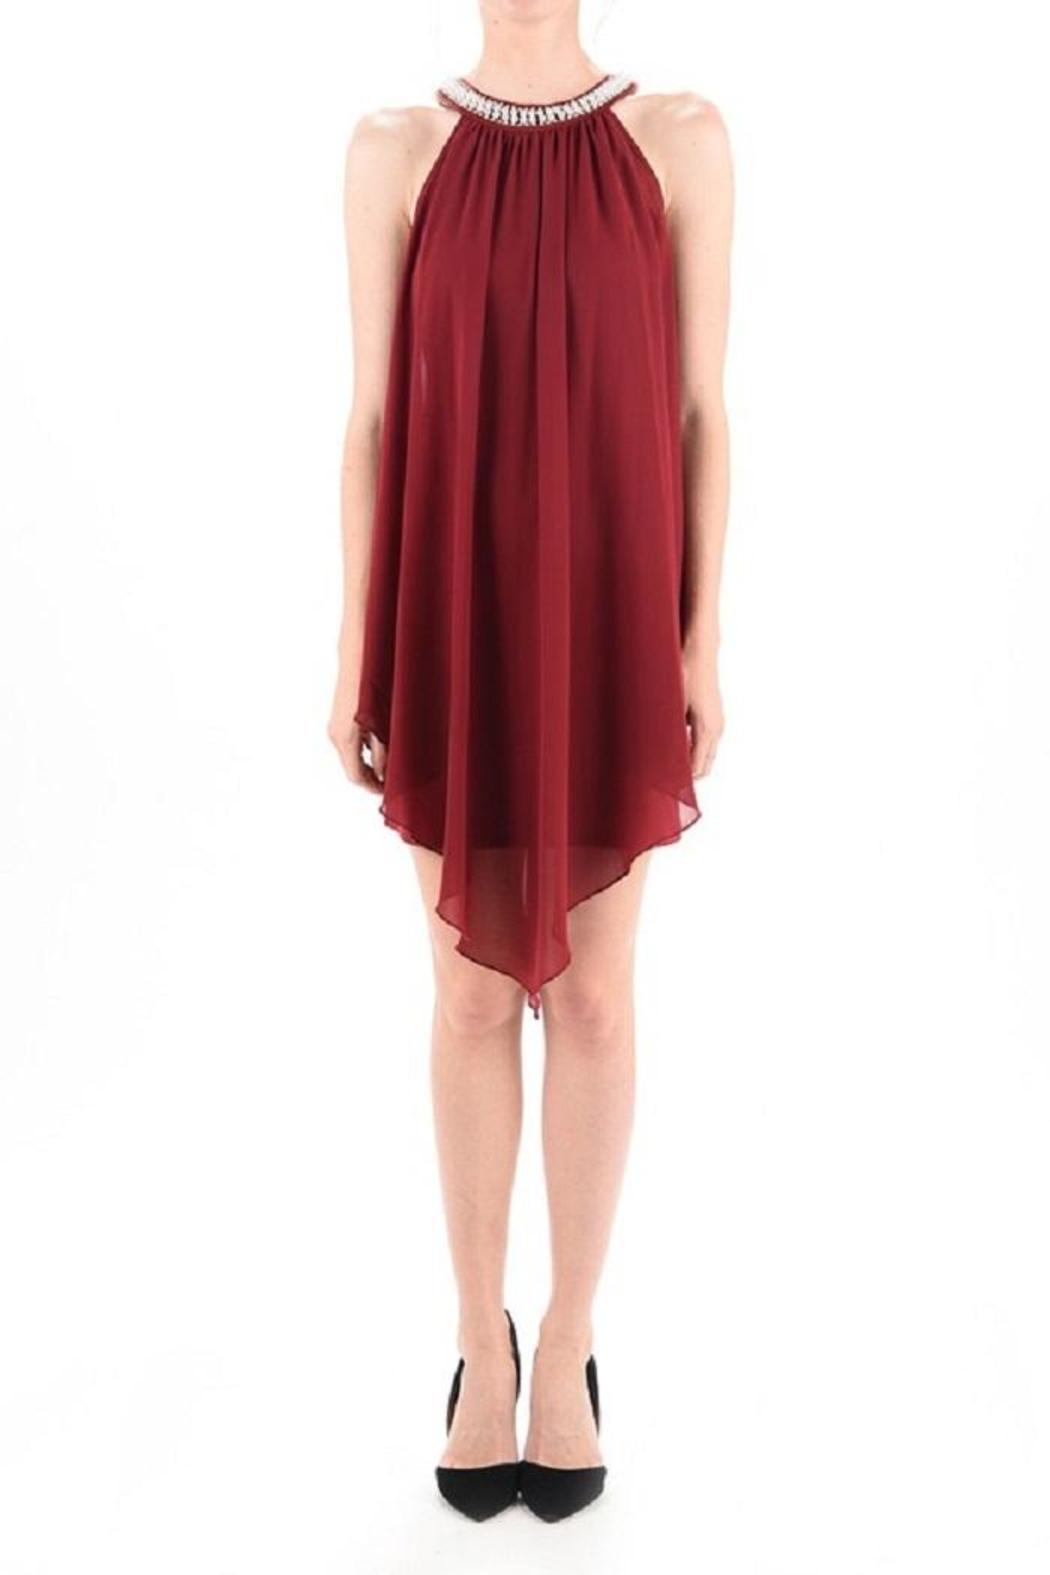 MICHEL Pearl Neck Dress - Back Cropped Image